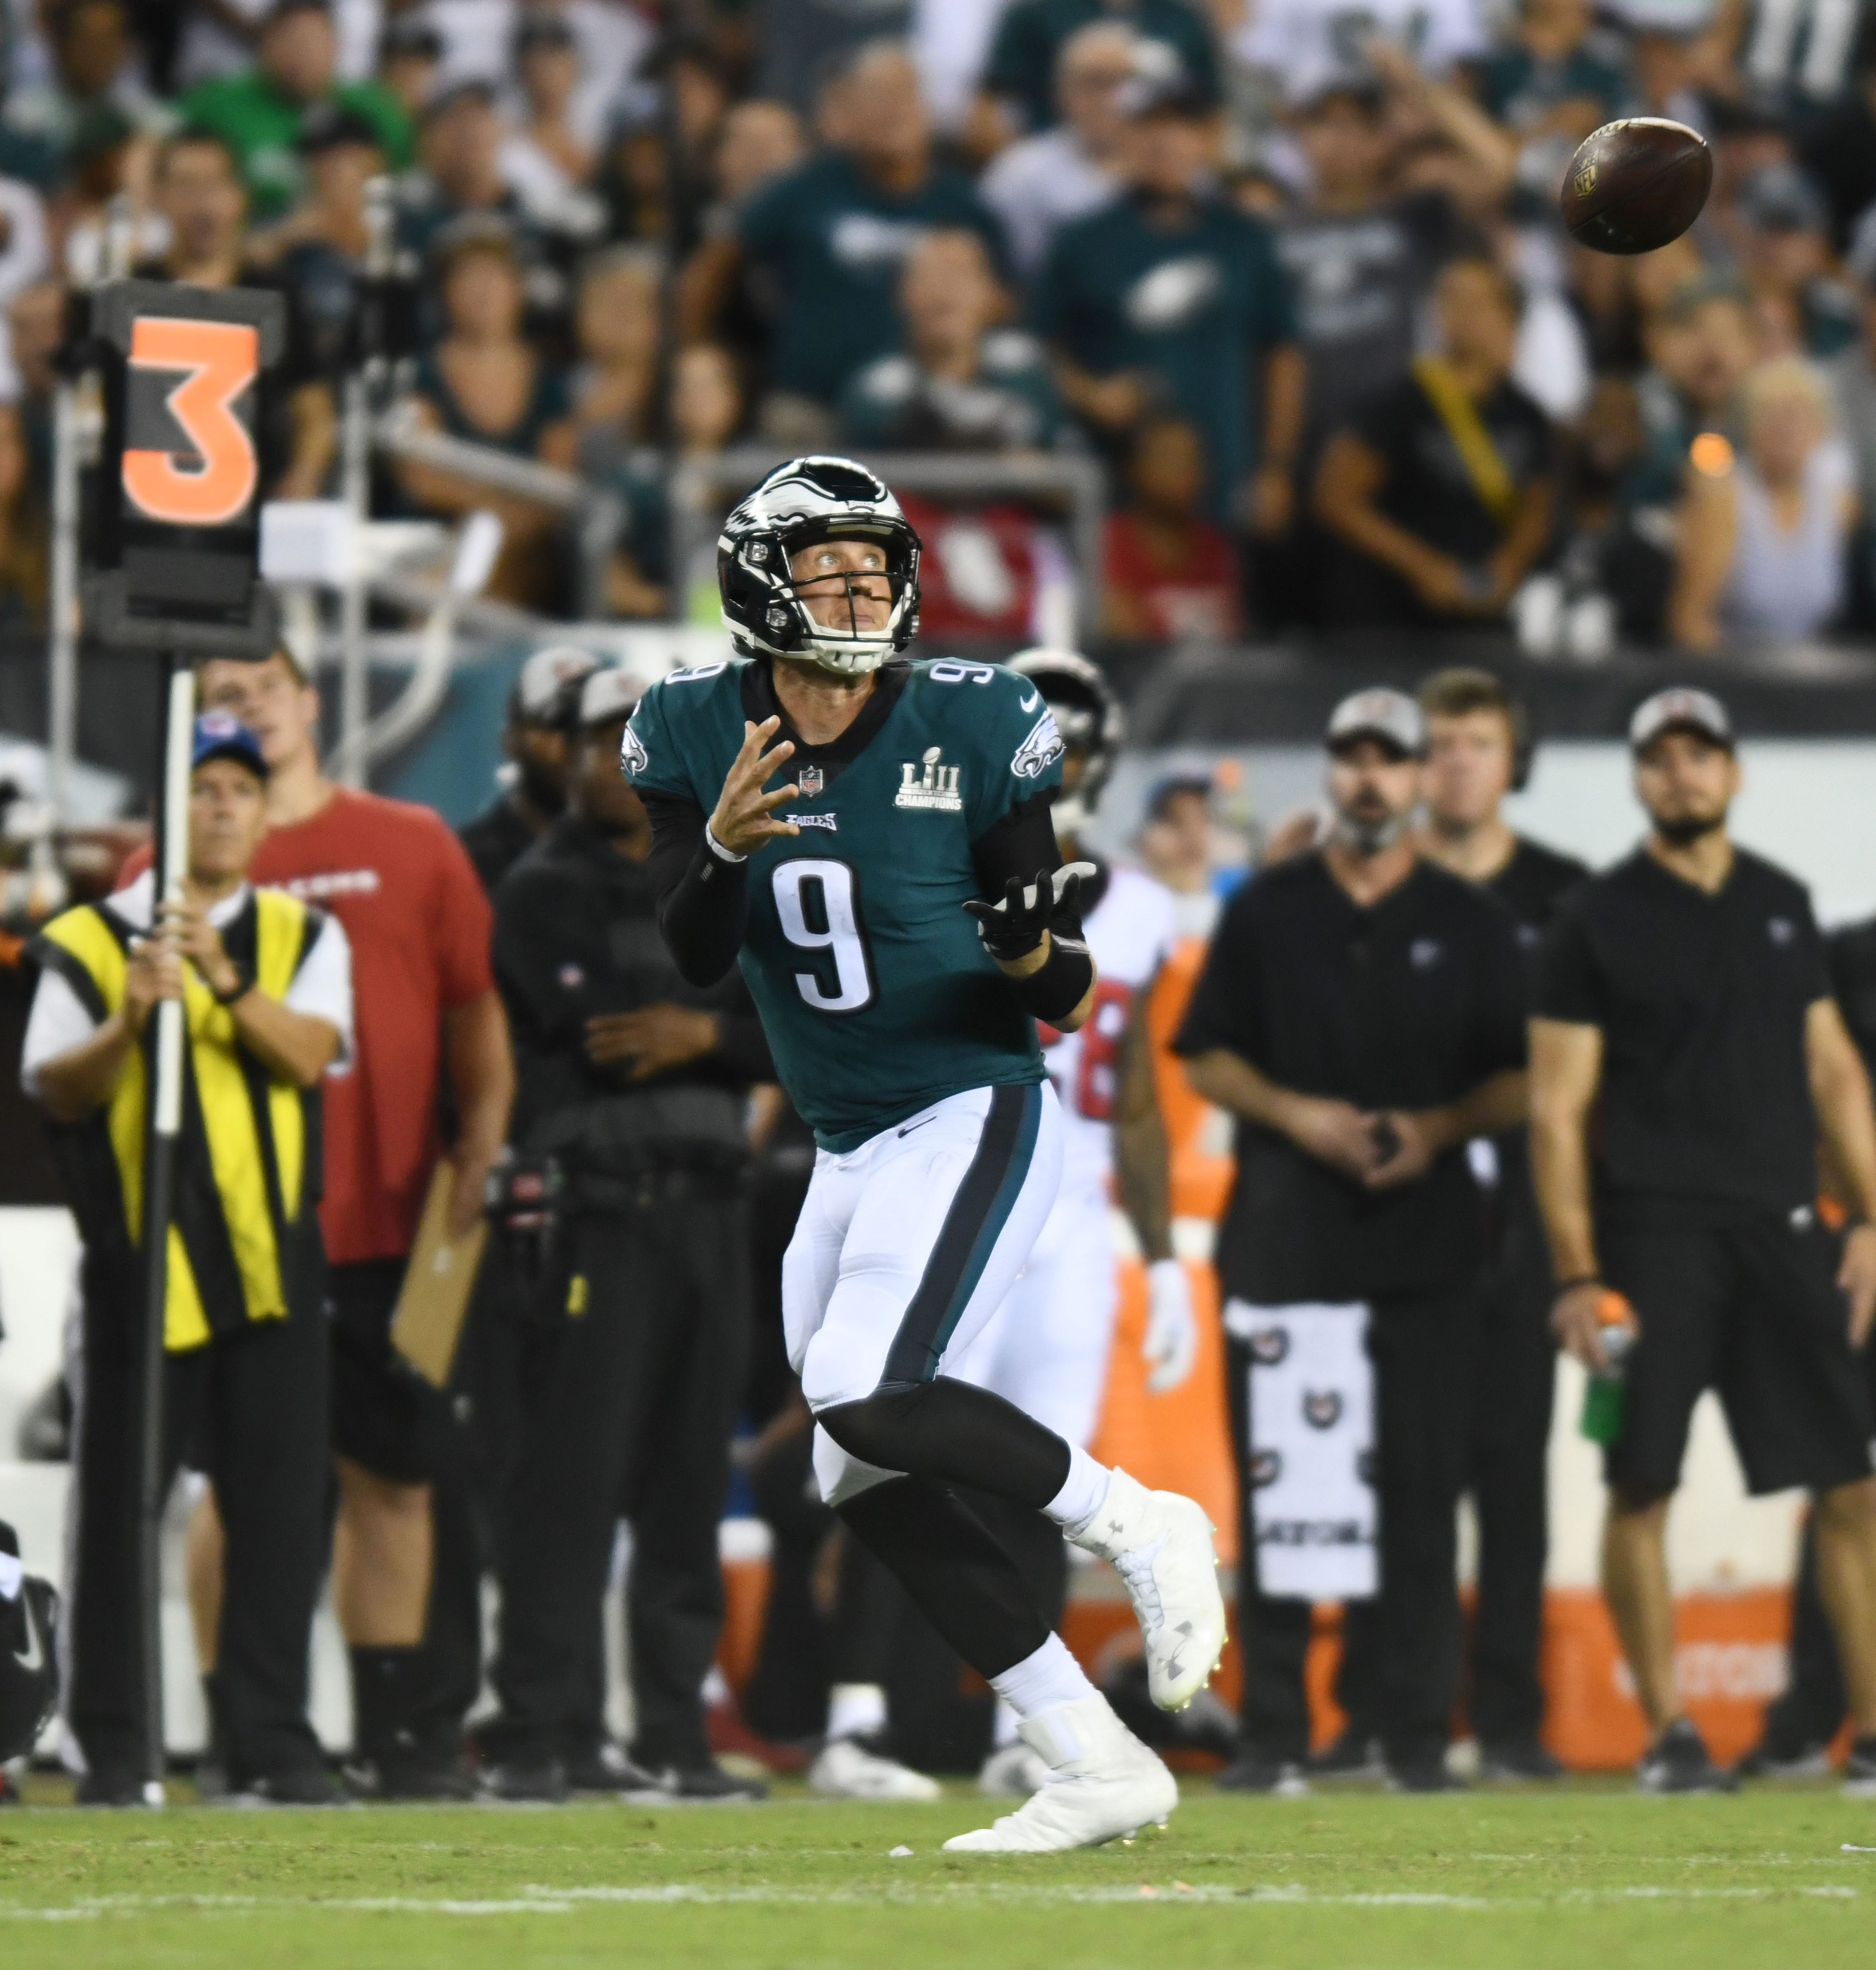 Philadelphia Eagles quarterback Nick Foles catches a pass from wide receiver Nelson Agholor in the third quarter against the Atlanta Falcons at Lincoln Financial Field. - Packers QB Carted Off In Clash With Bears